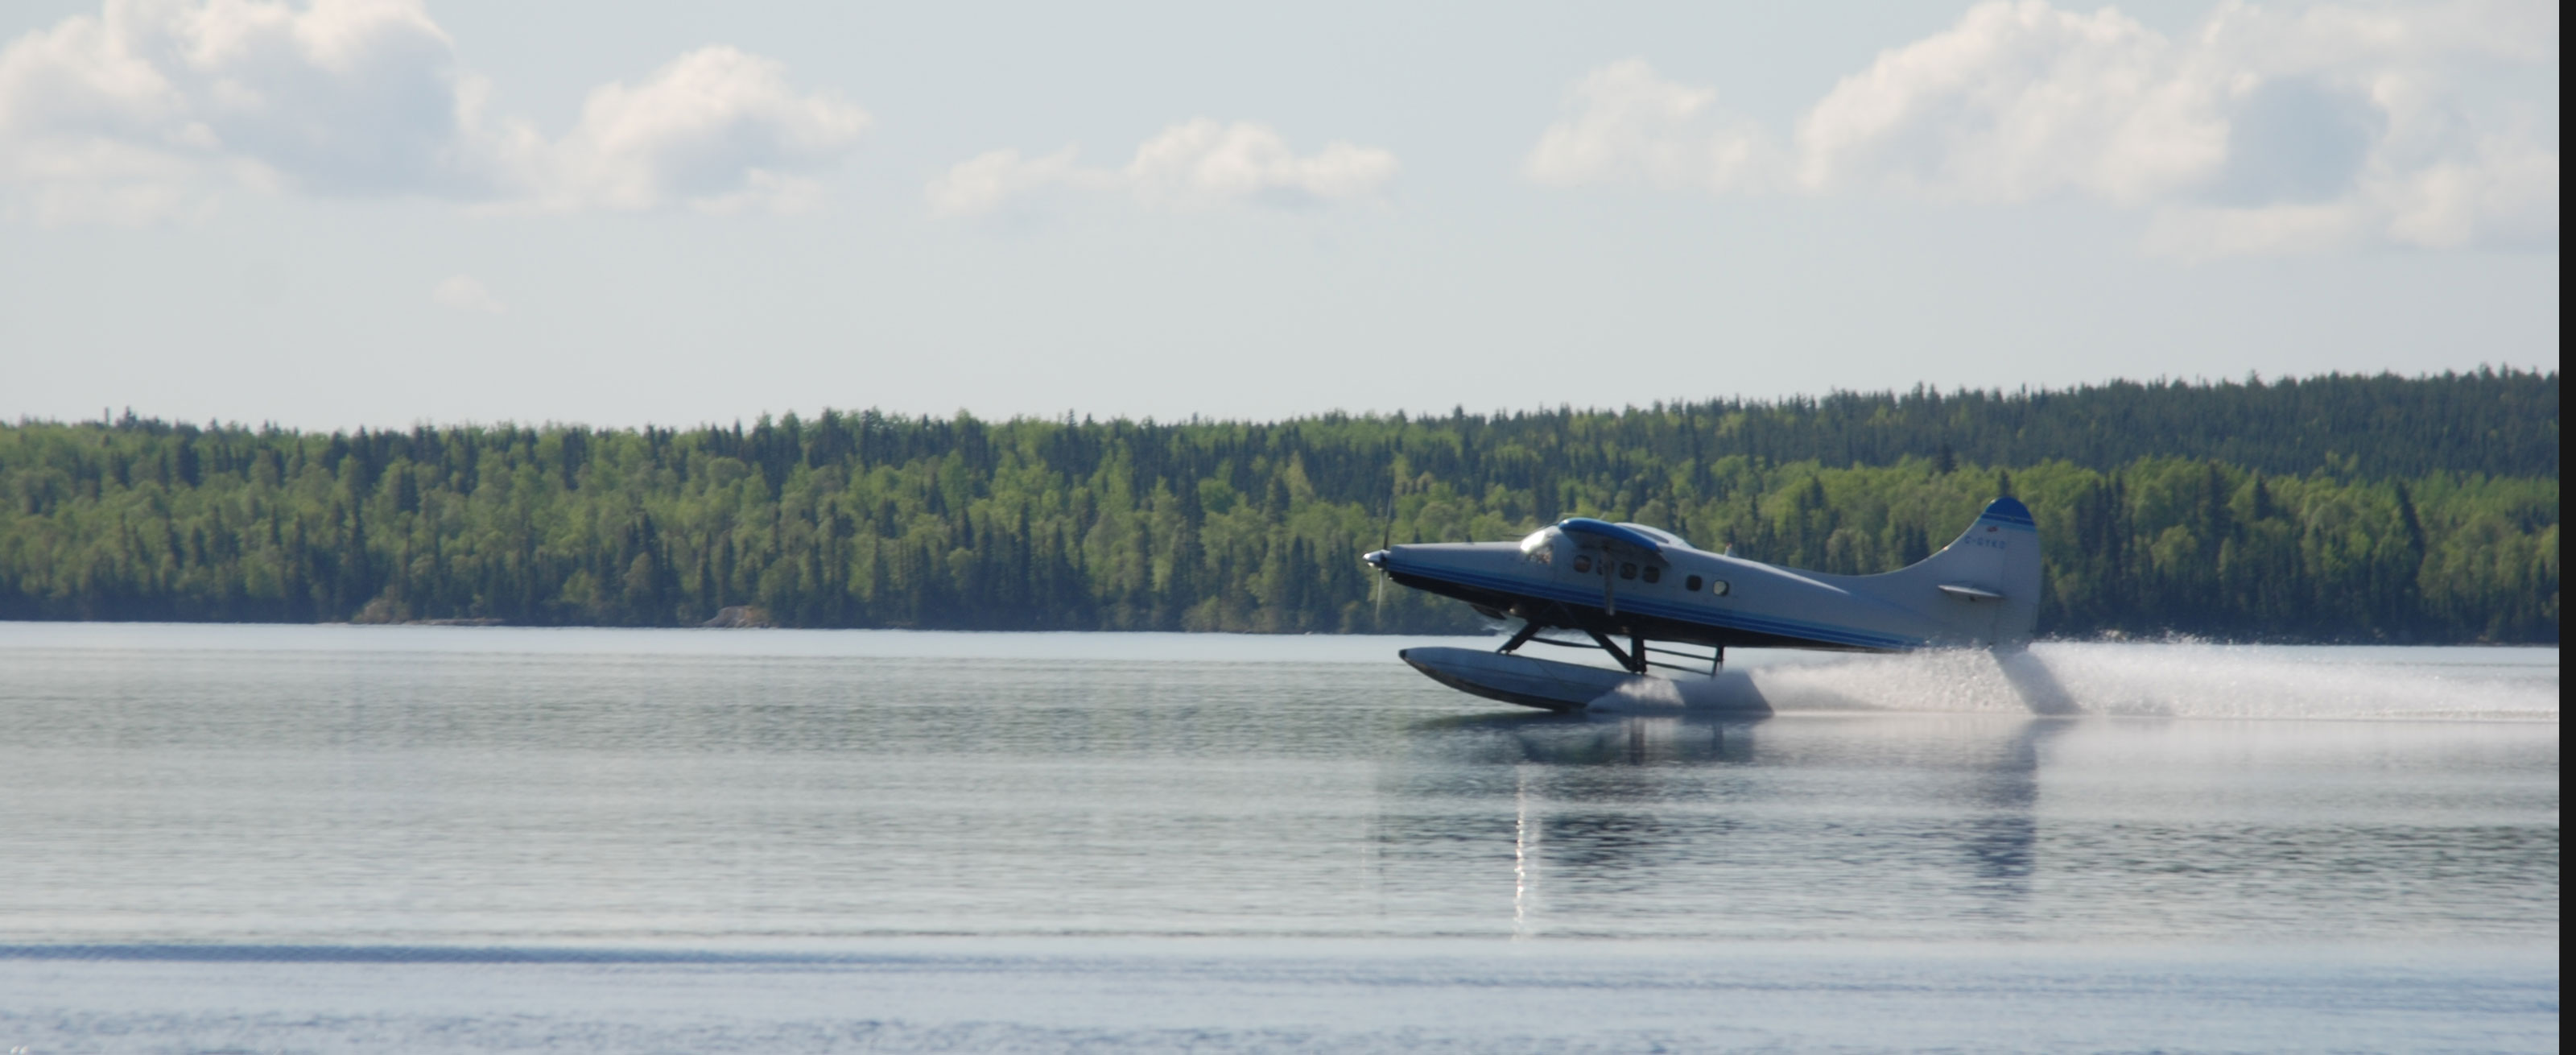 Fly in fishing trips ontaio canada float planes service for Fly in fishing canada